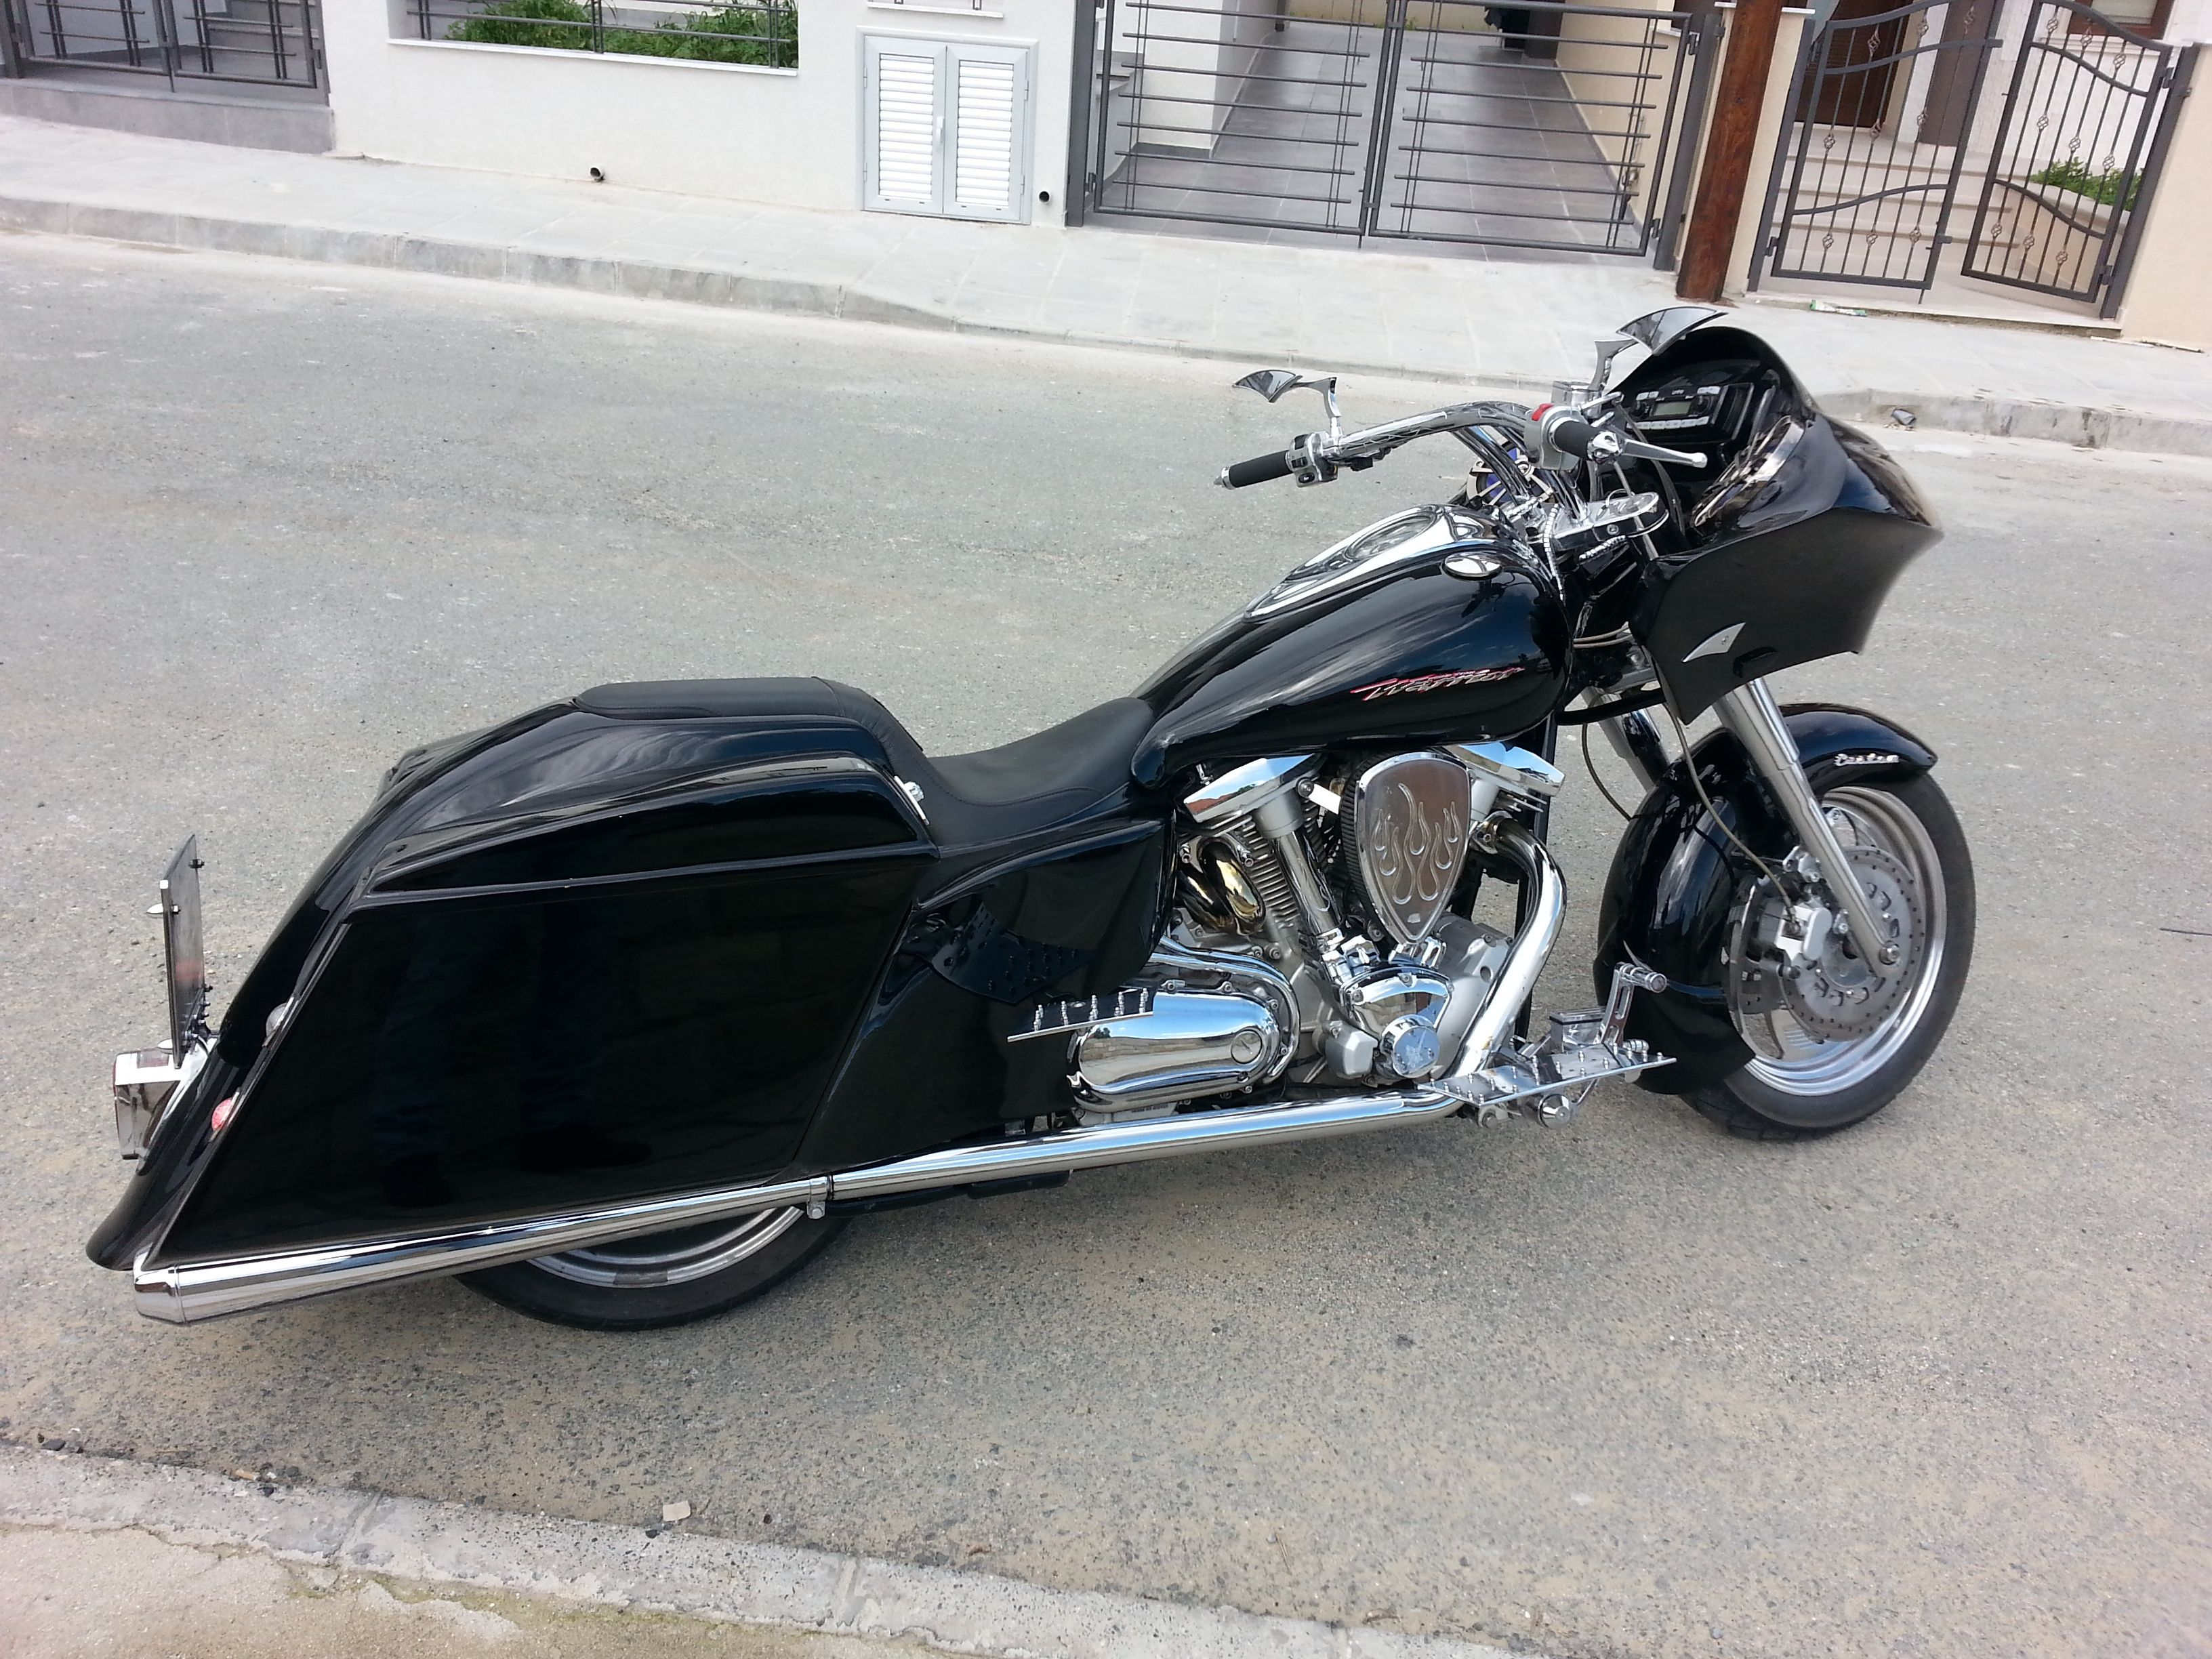 Yamaha roadstar baggers pinterest wheels for Yamaha bagger motorcycles